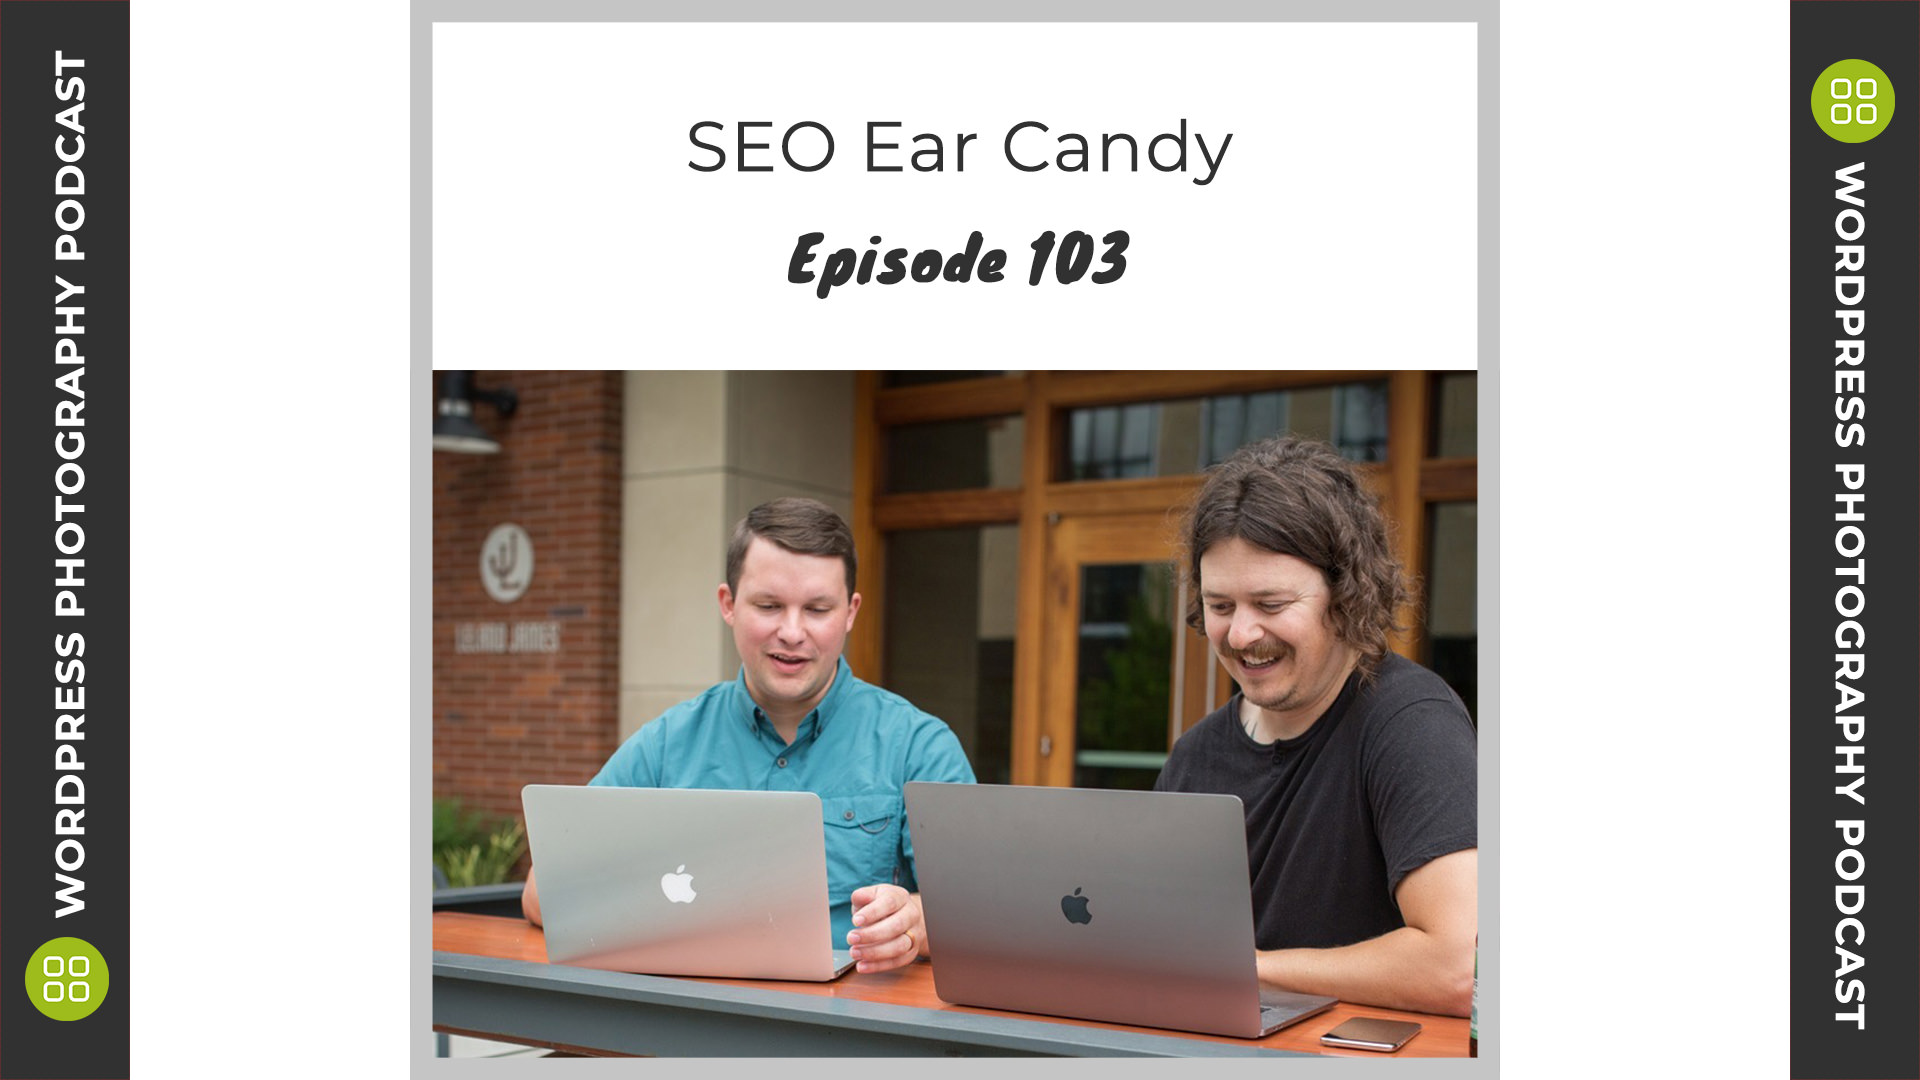 Episode 103 – SEO Ear Candy with Corey Potter & Dylan Howell